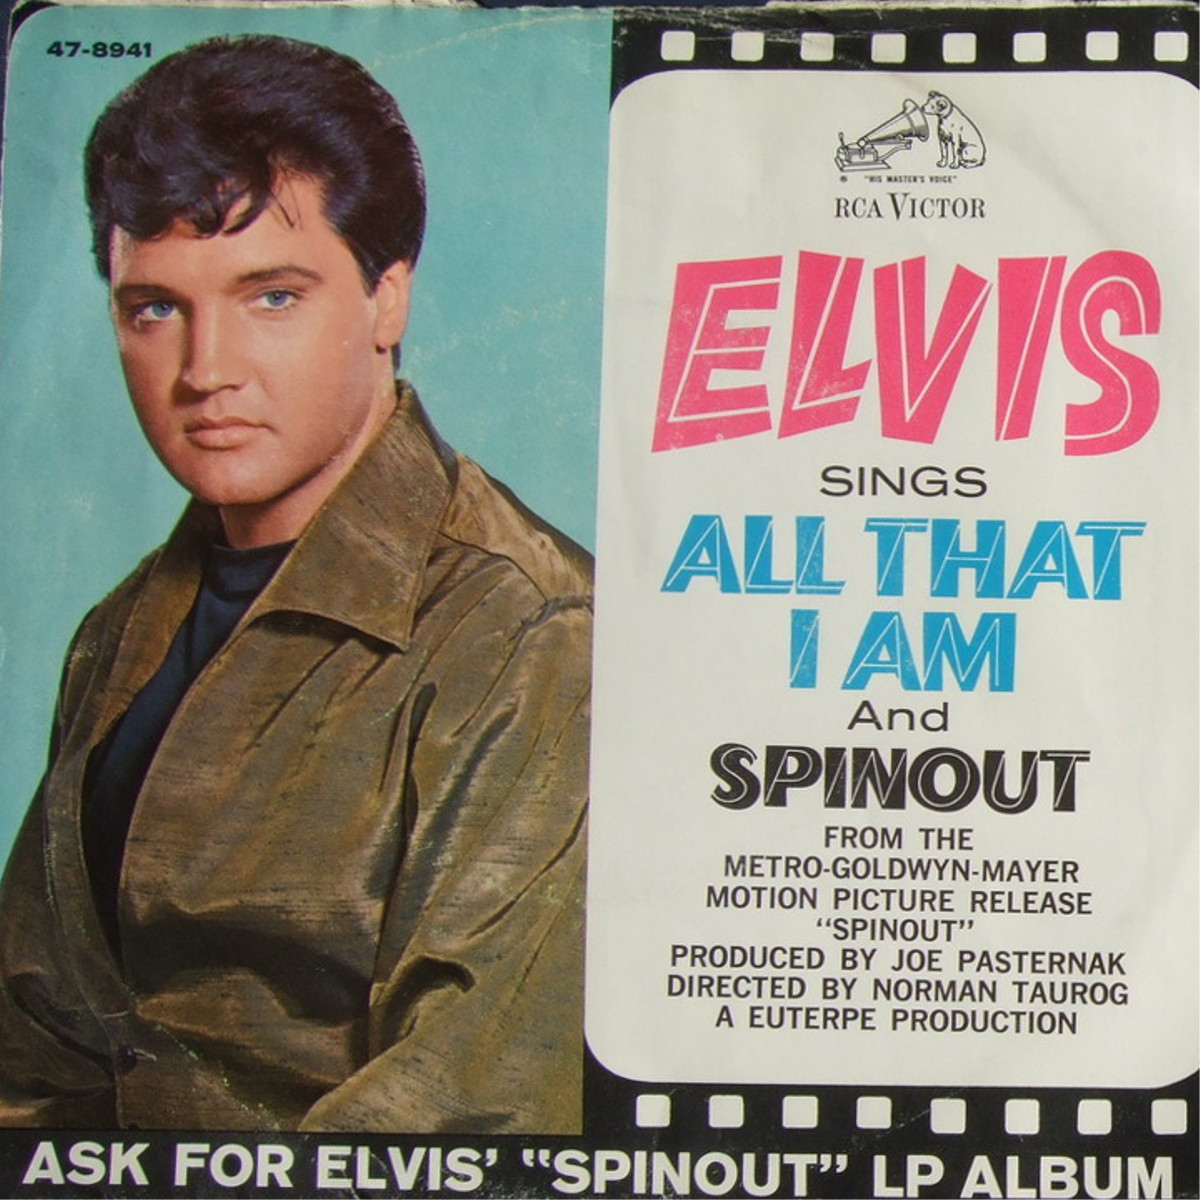 Spinout / All That I Am 47-8941by4qfl